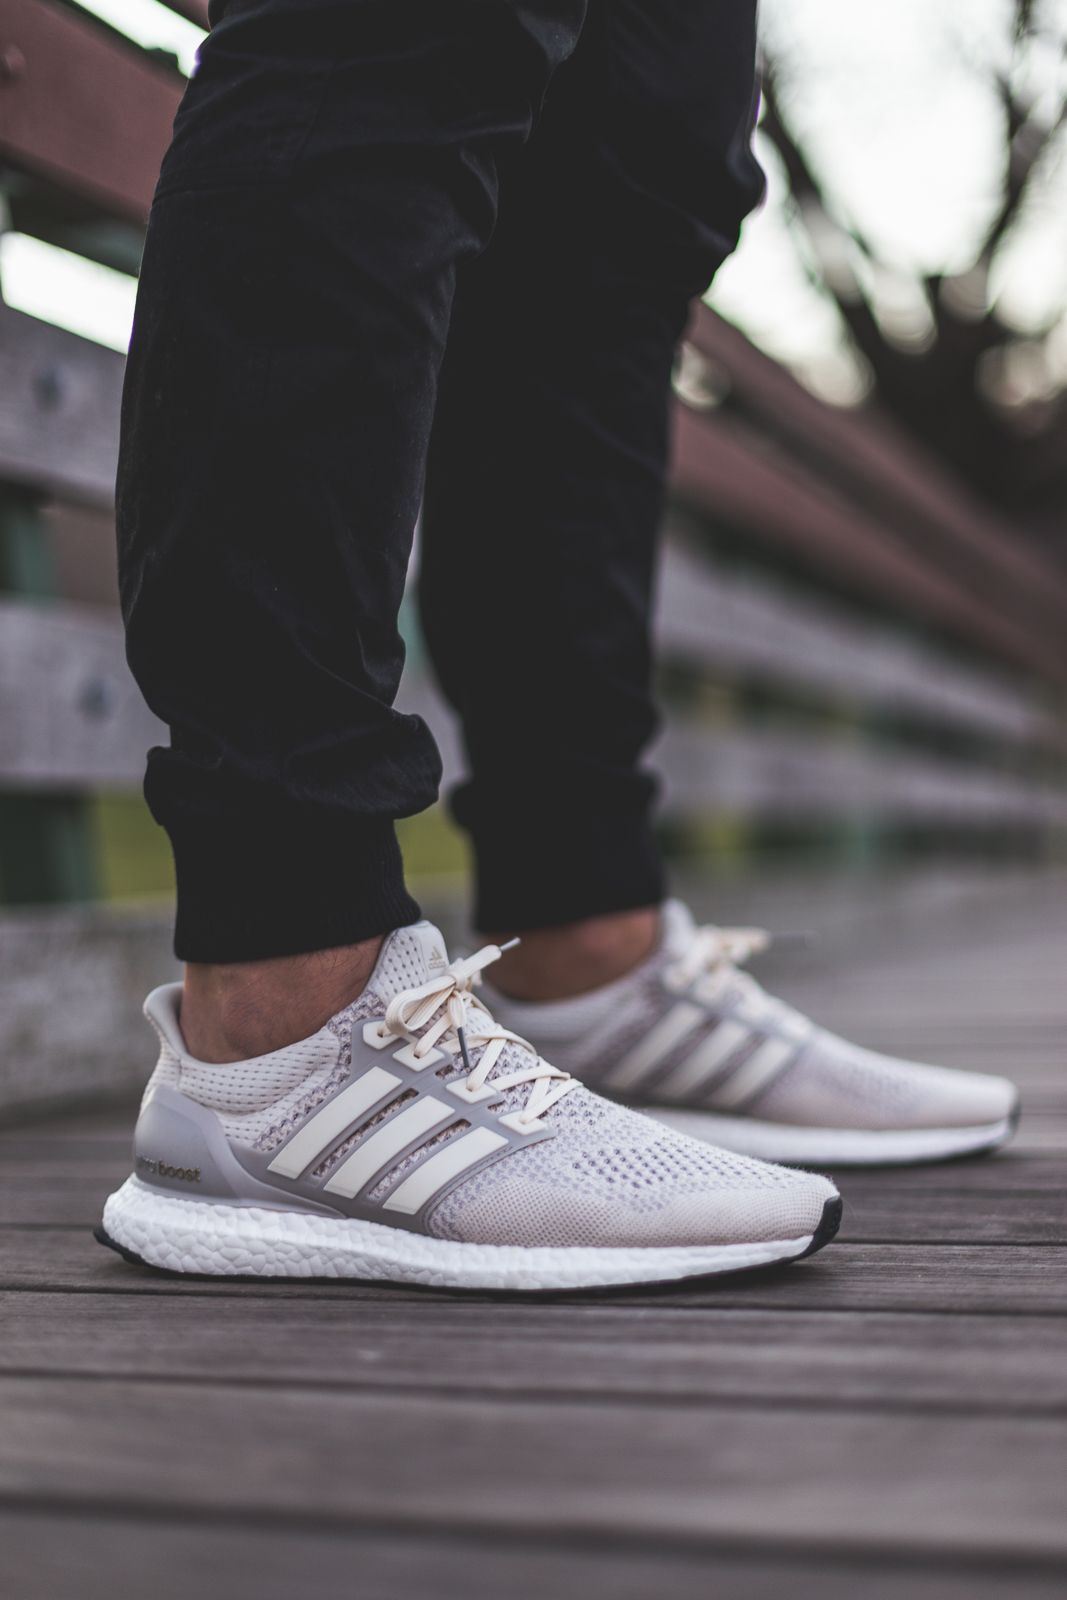 Adidas Ultra Boost LTD Cream  01c008fcc